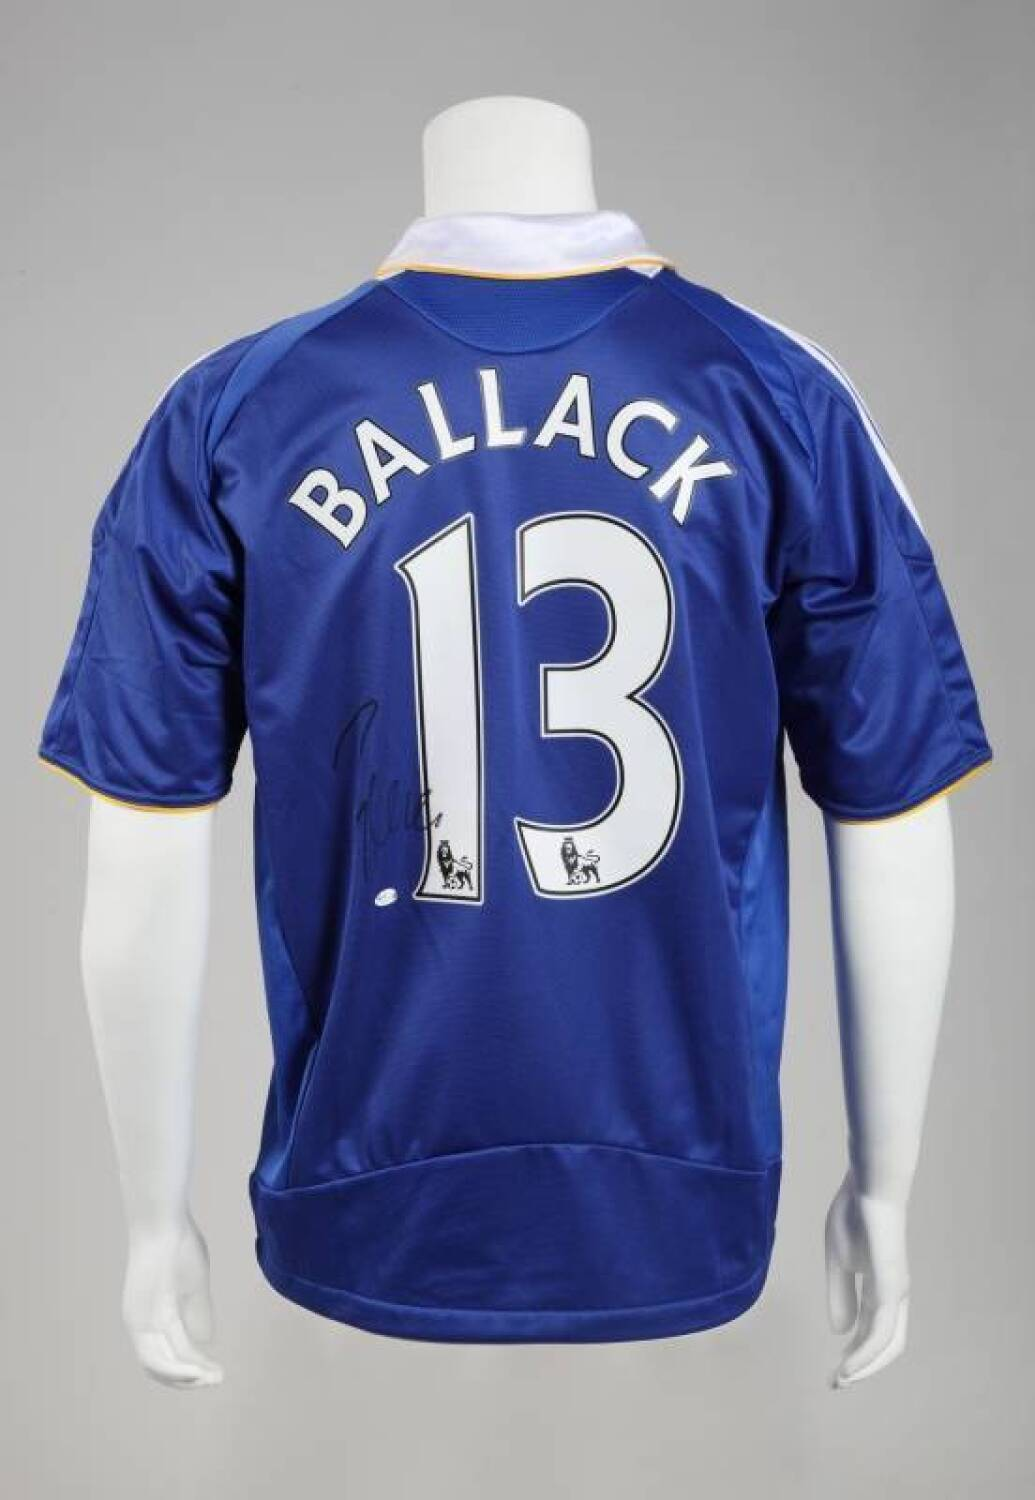 online store 67e08 3be56 MICHAEL BALLACK SIGNED CHELSEA F.C. JERSEY - Current price: $150